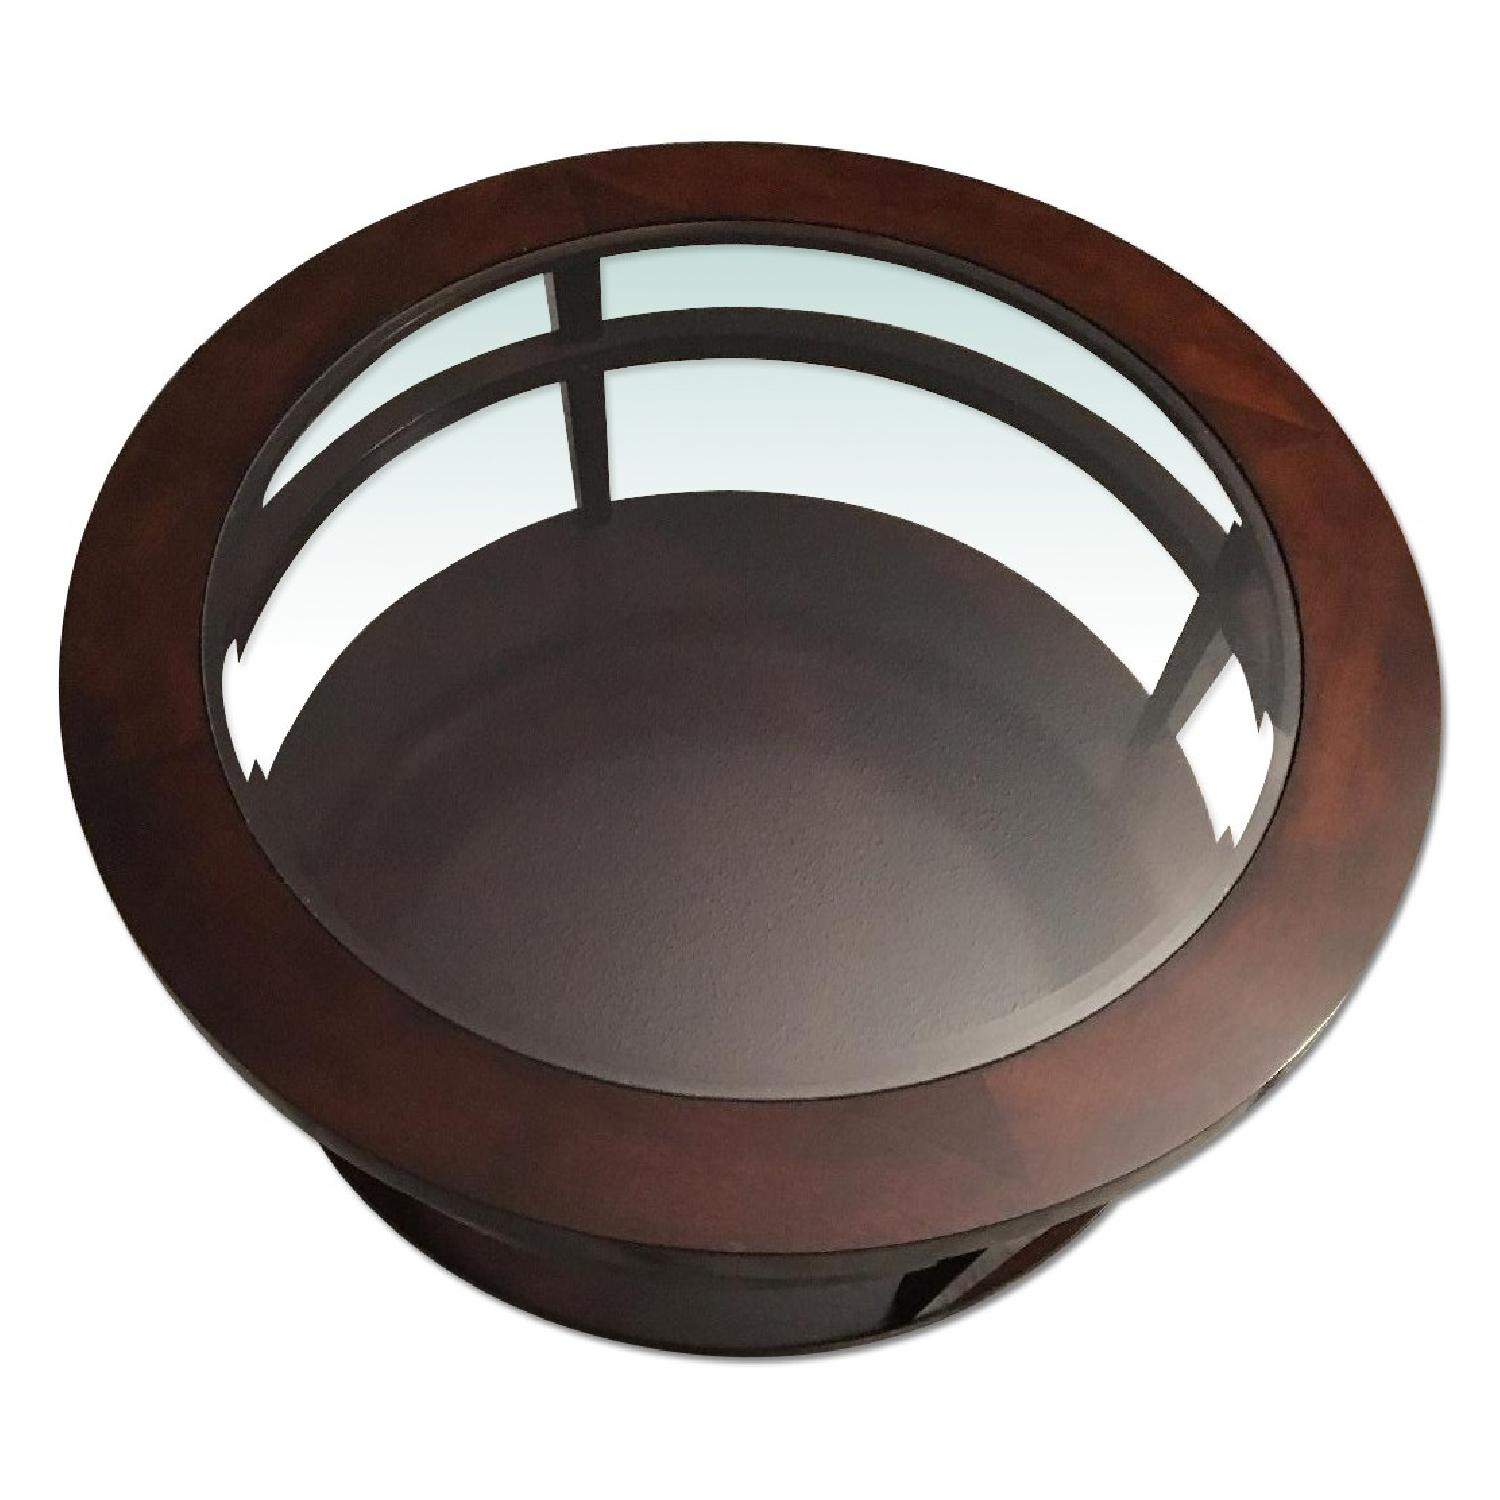 Macy's Round Wood/Glass Coffee Table on Casters - image-4